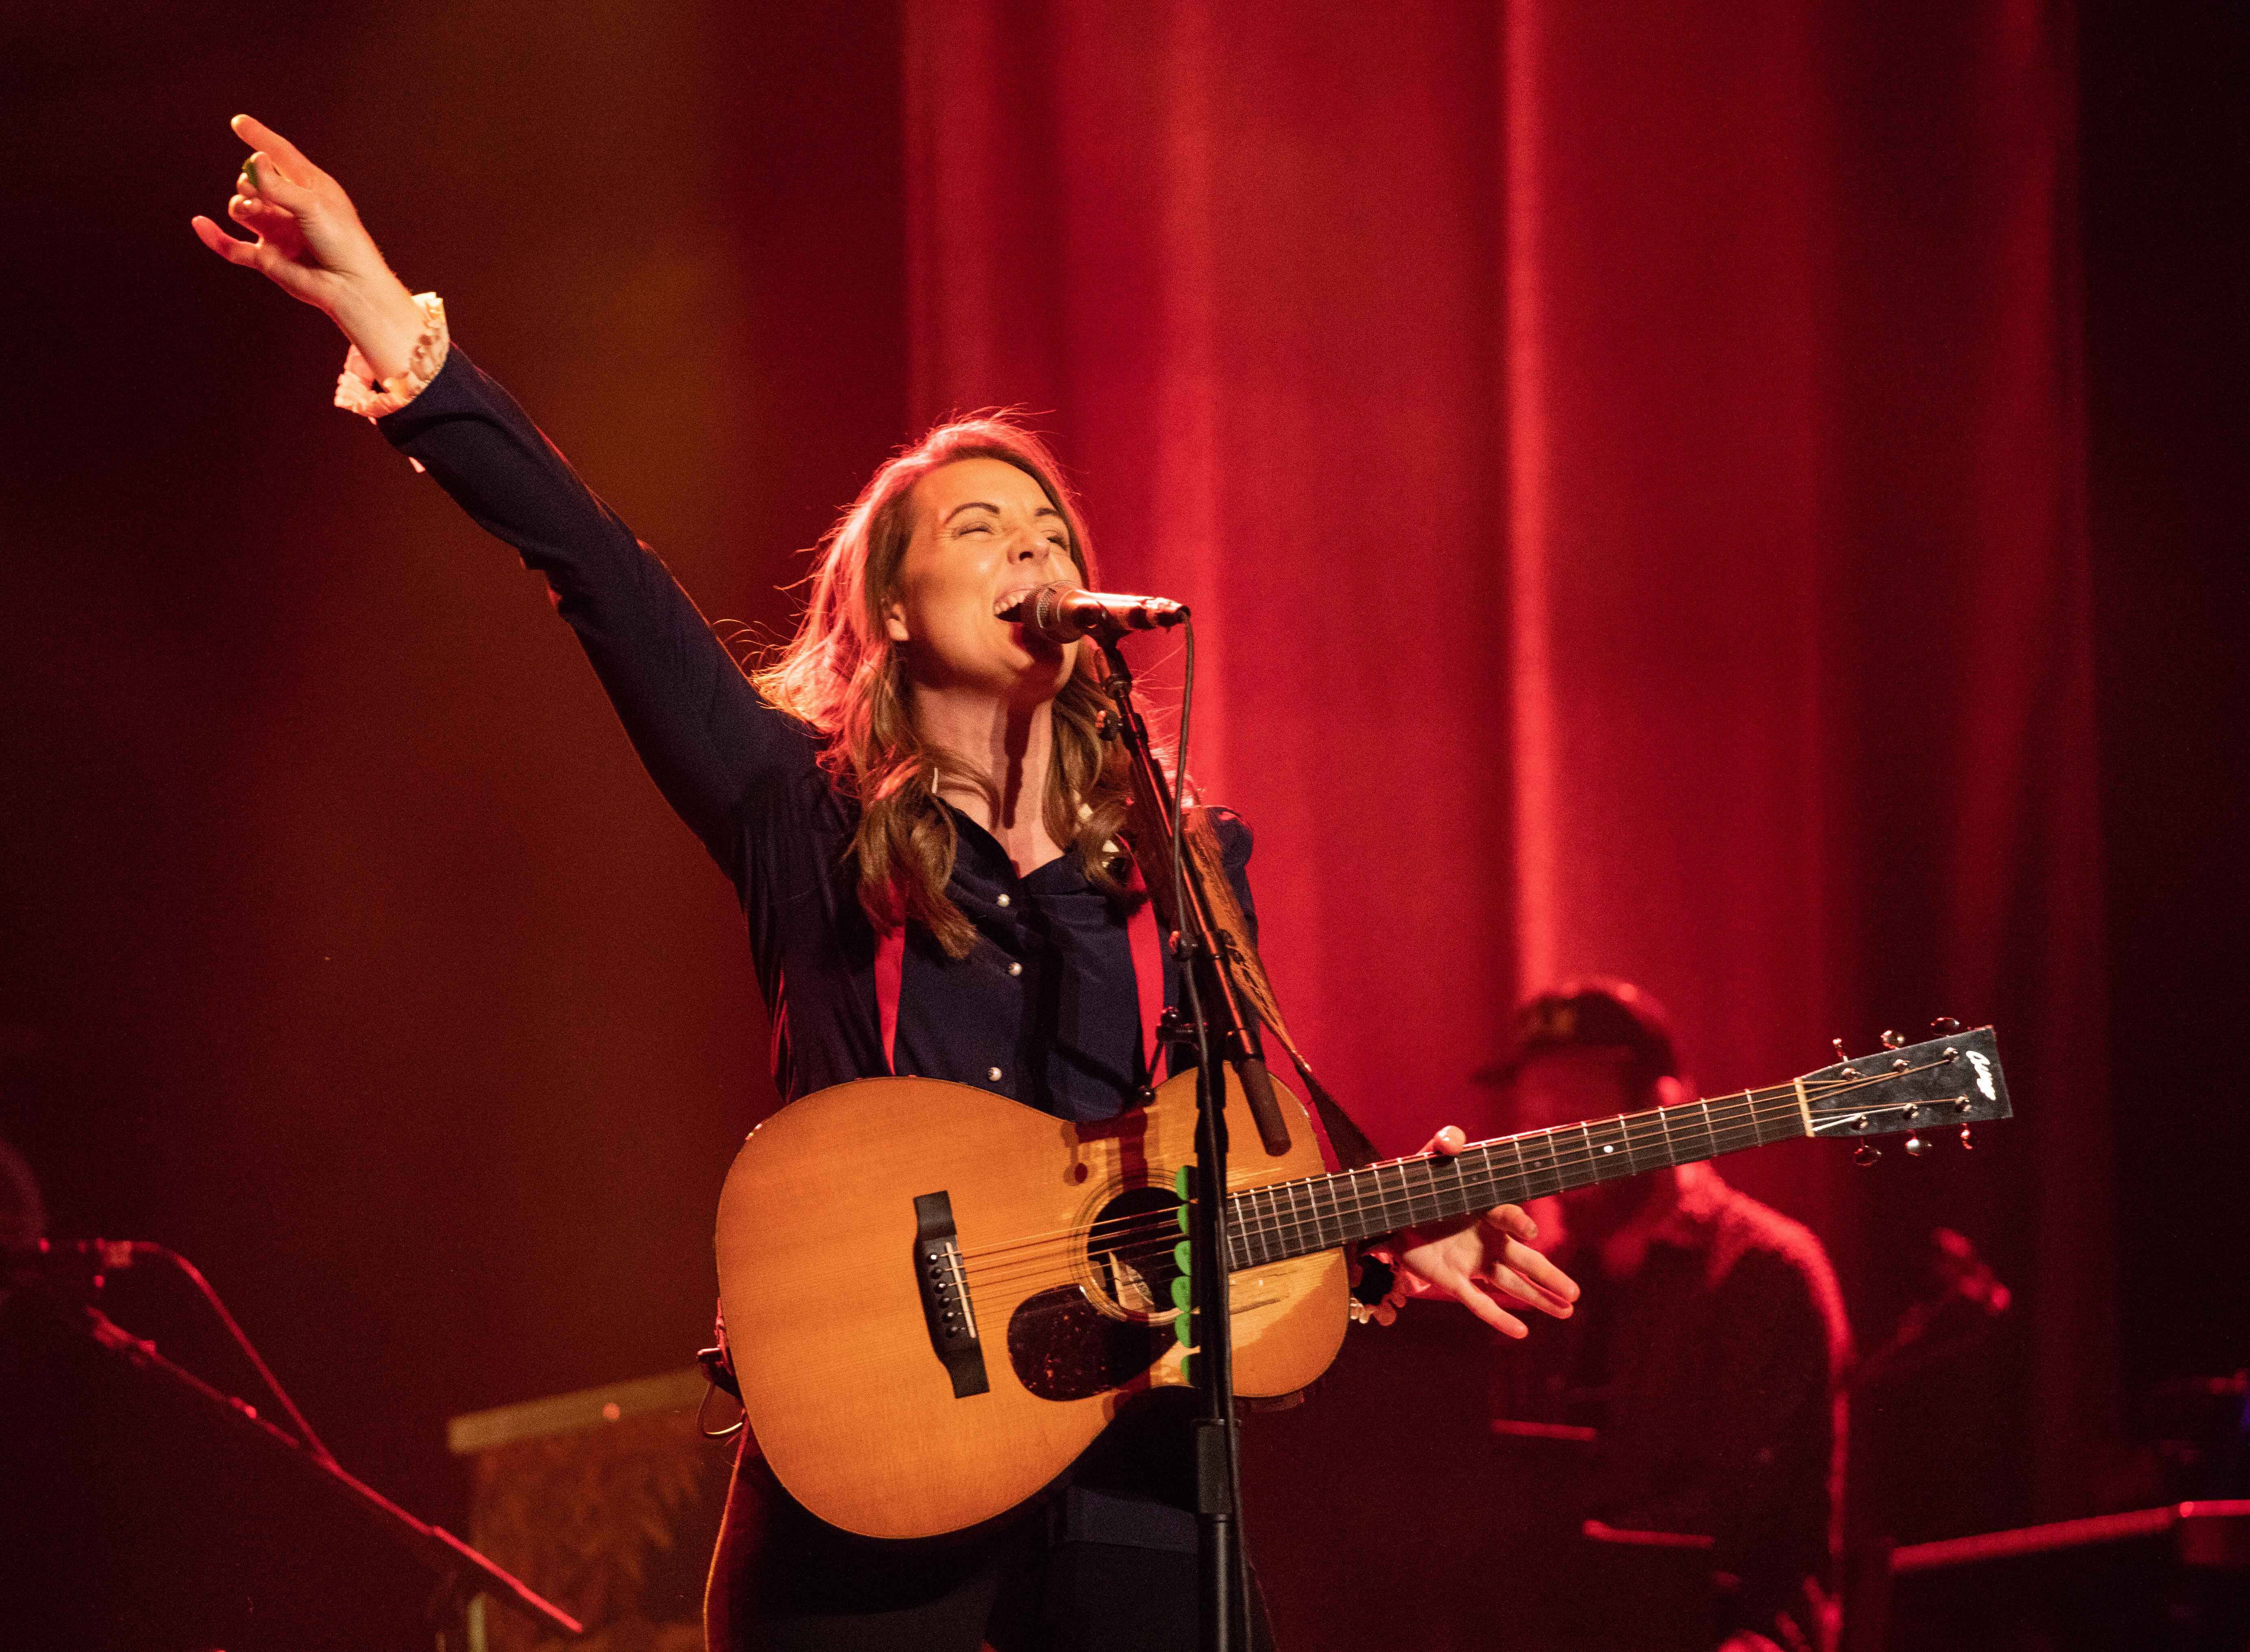 Atlas Music Publishing Inks Deal With Brandi Carlile, Announces New Nashville Office